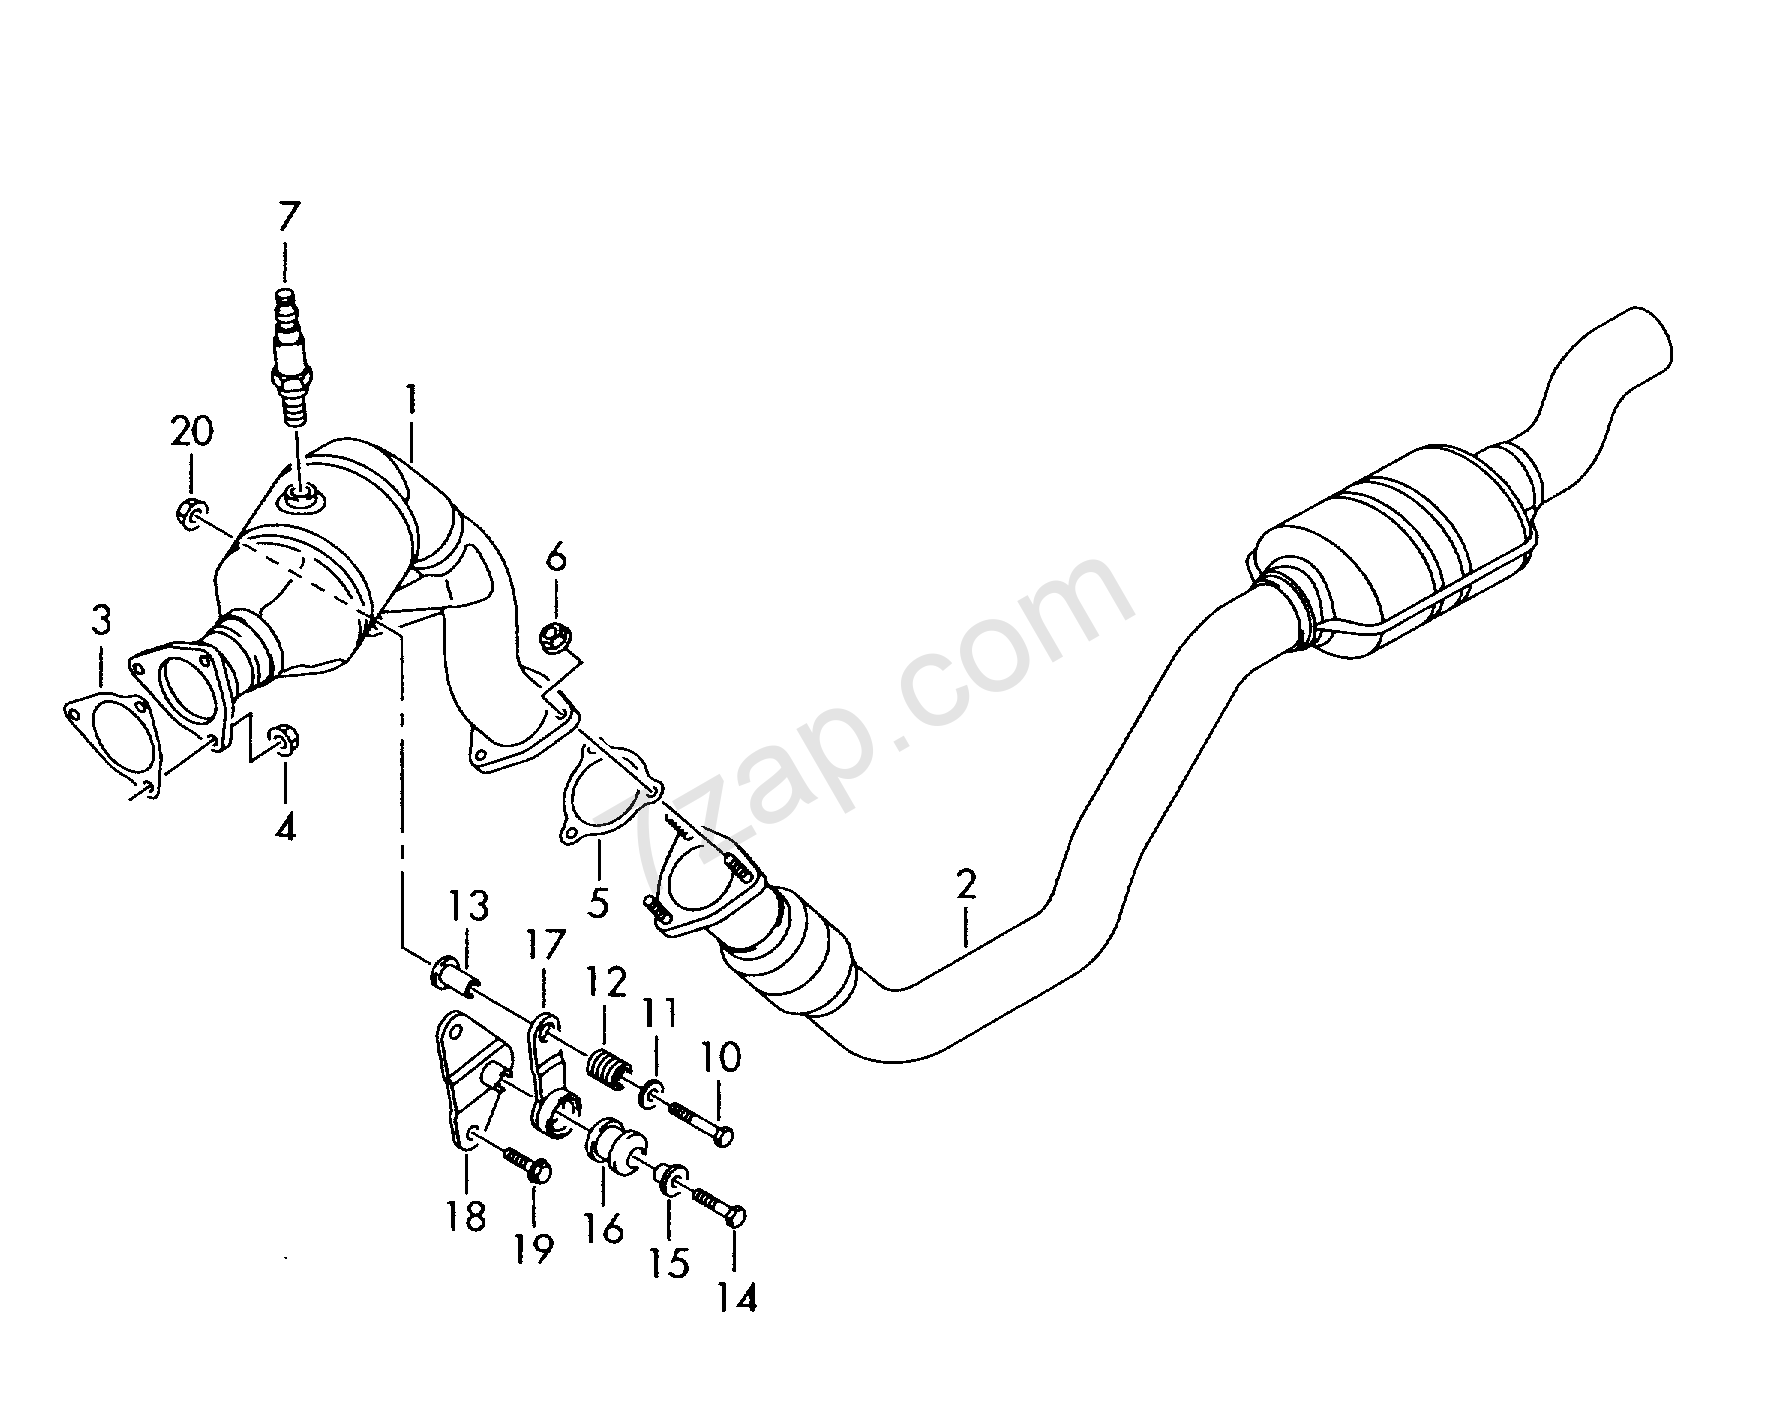 exhaust pipe with catalyst Audi A4/Avant (A4) 2010 year